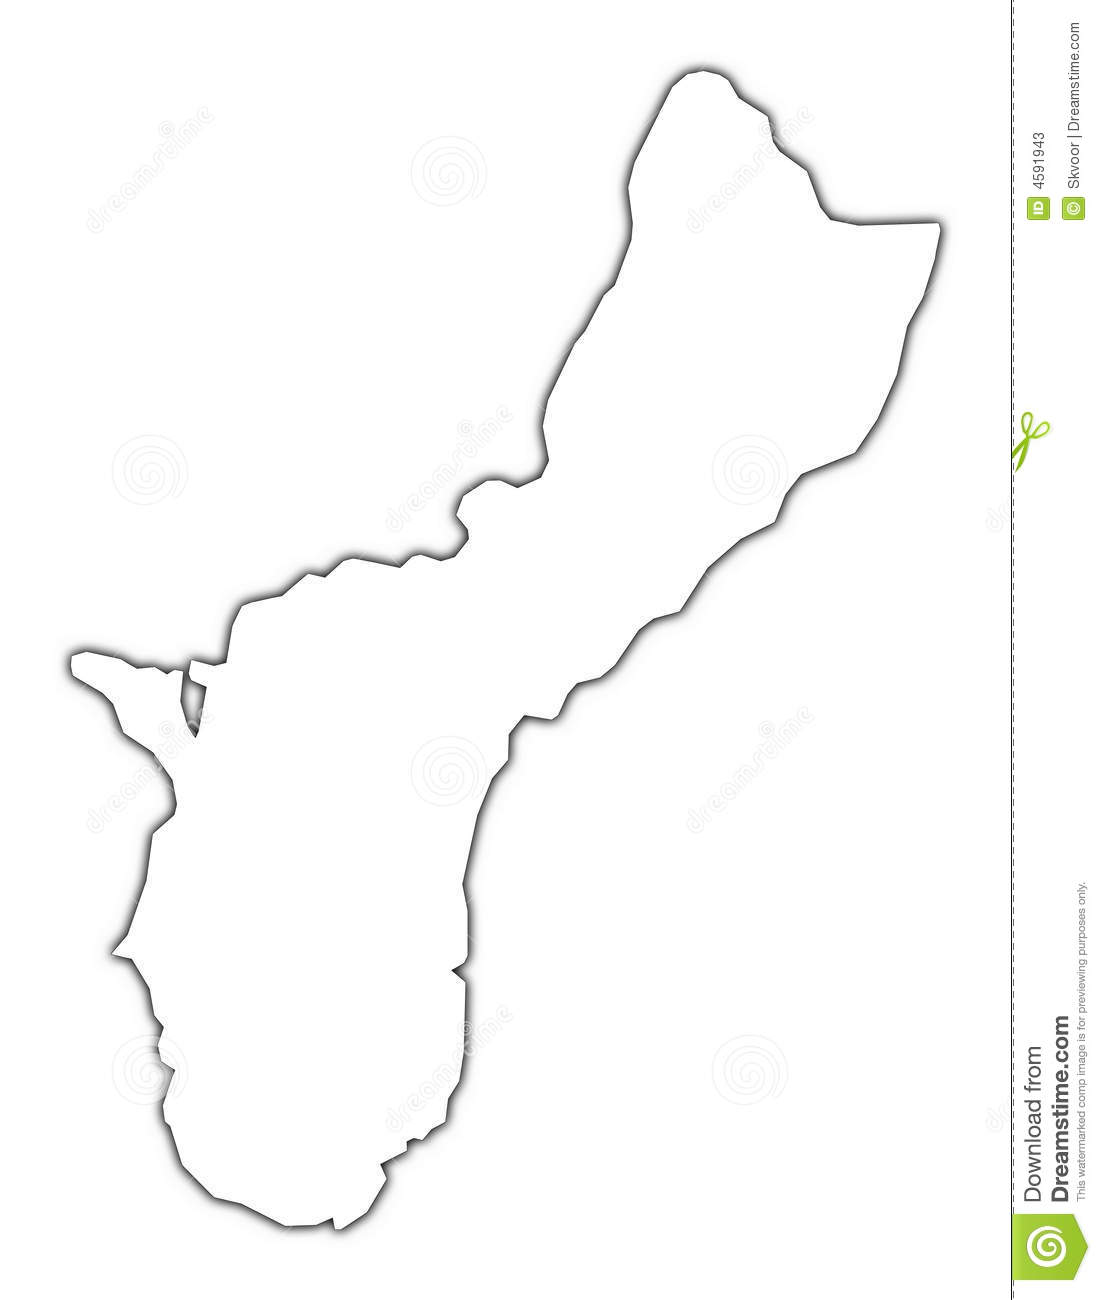 Guam Outline Map Stock Photos.